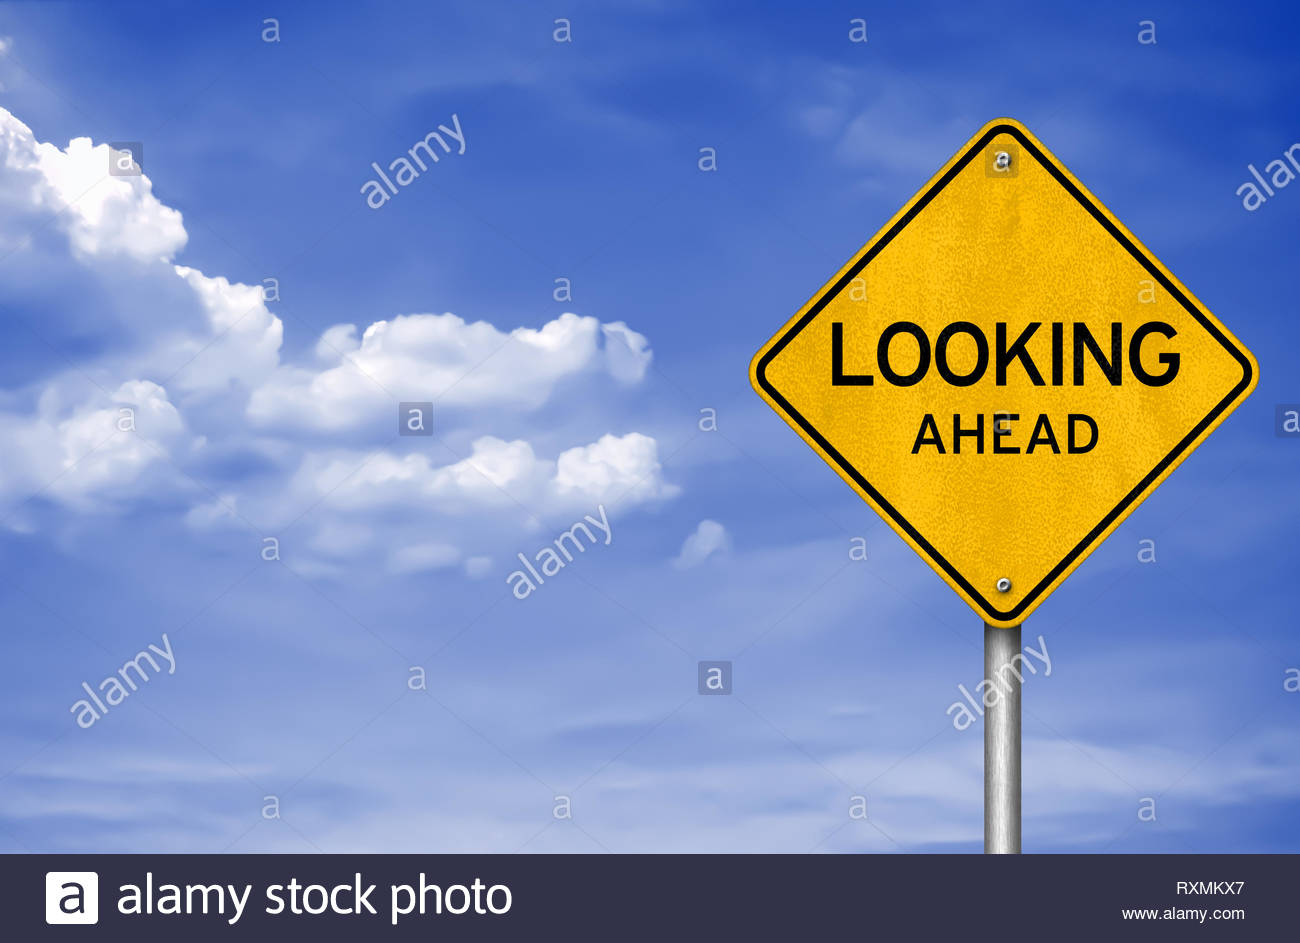 Looking ahead - road sign - Stock Image